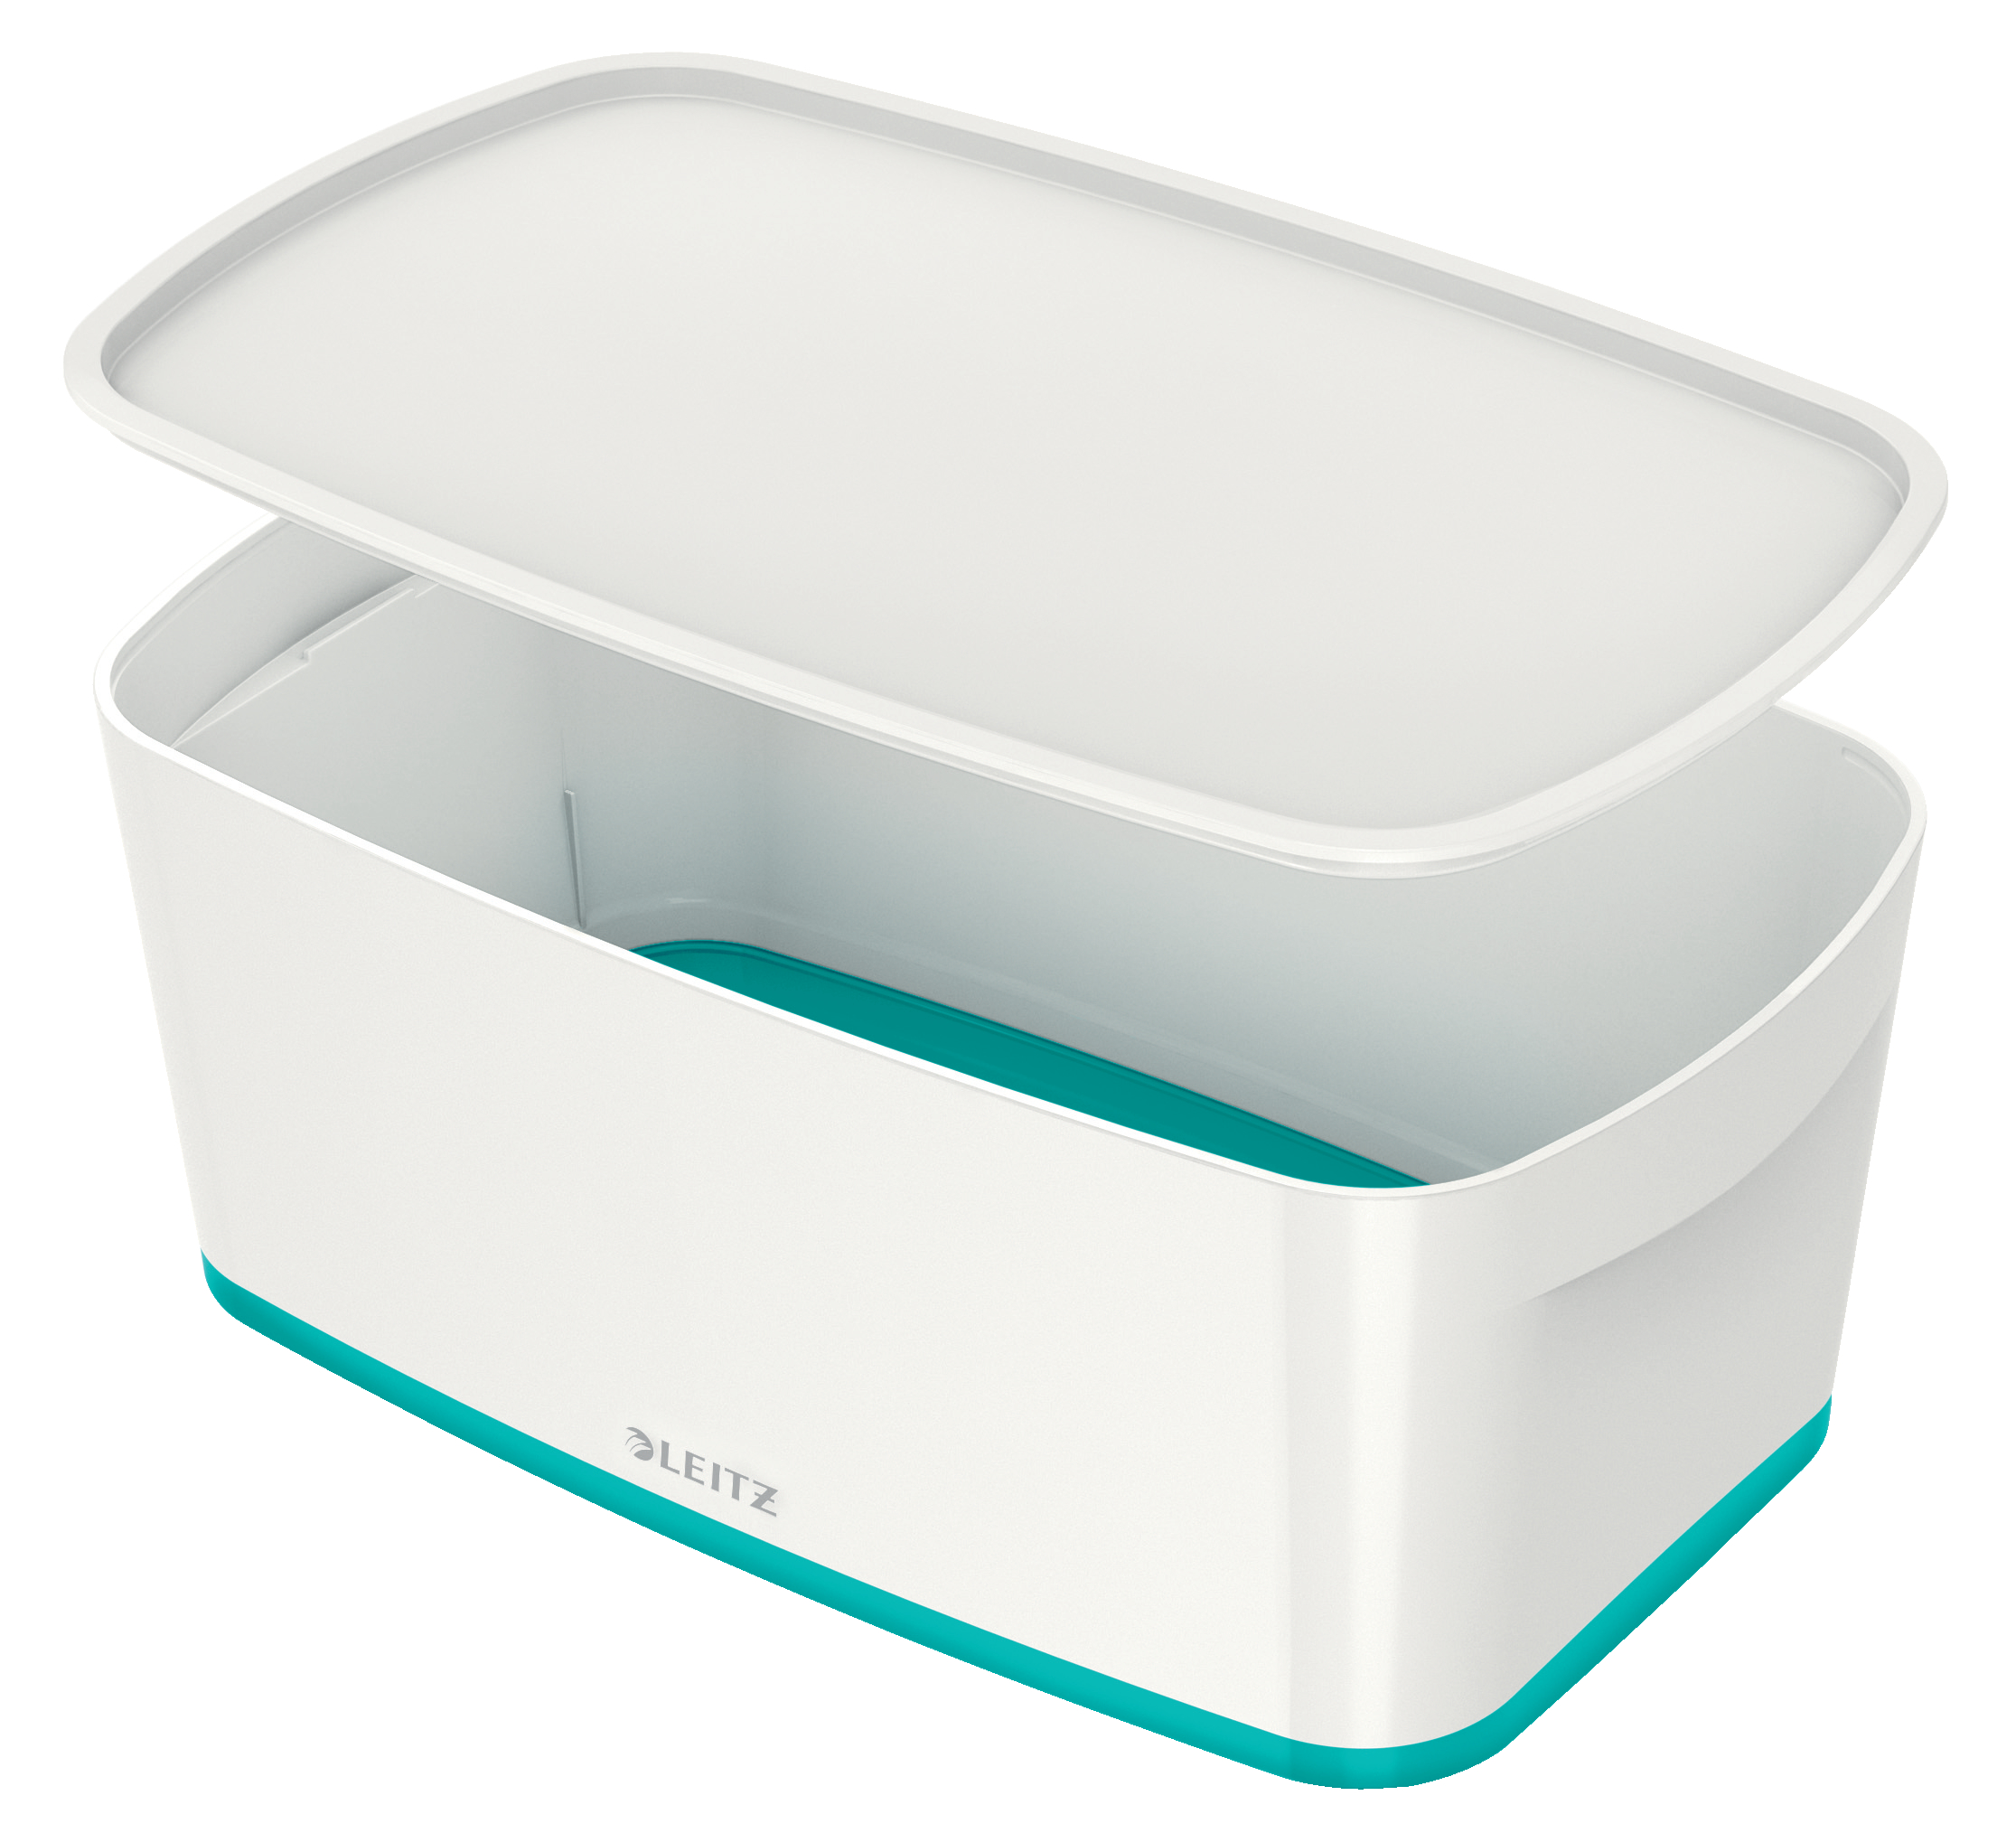 Tool Boxes Leitz MyBox Small with Lid WOW White Ice Blue